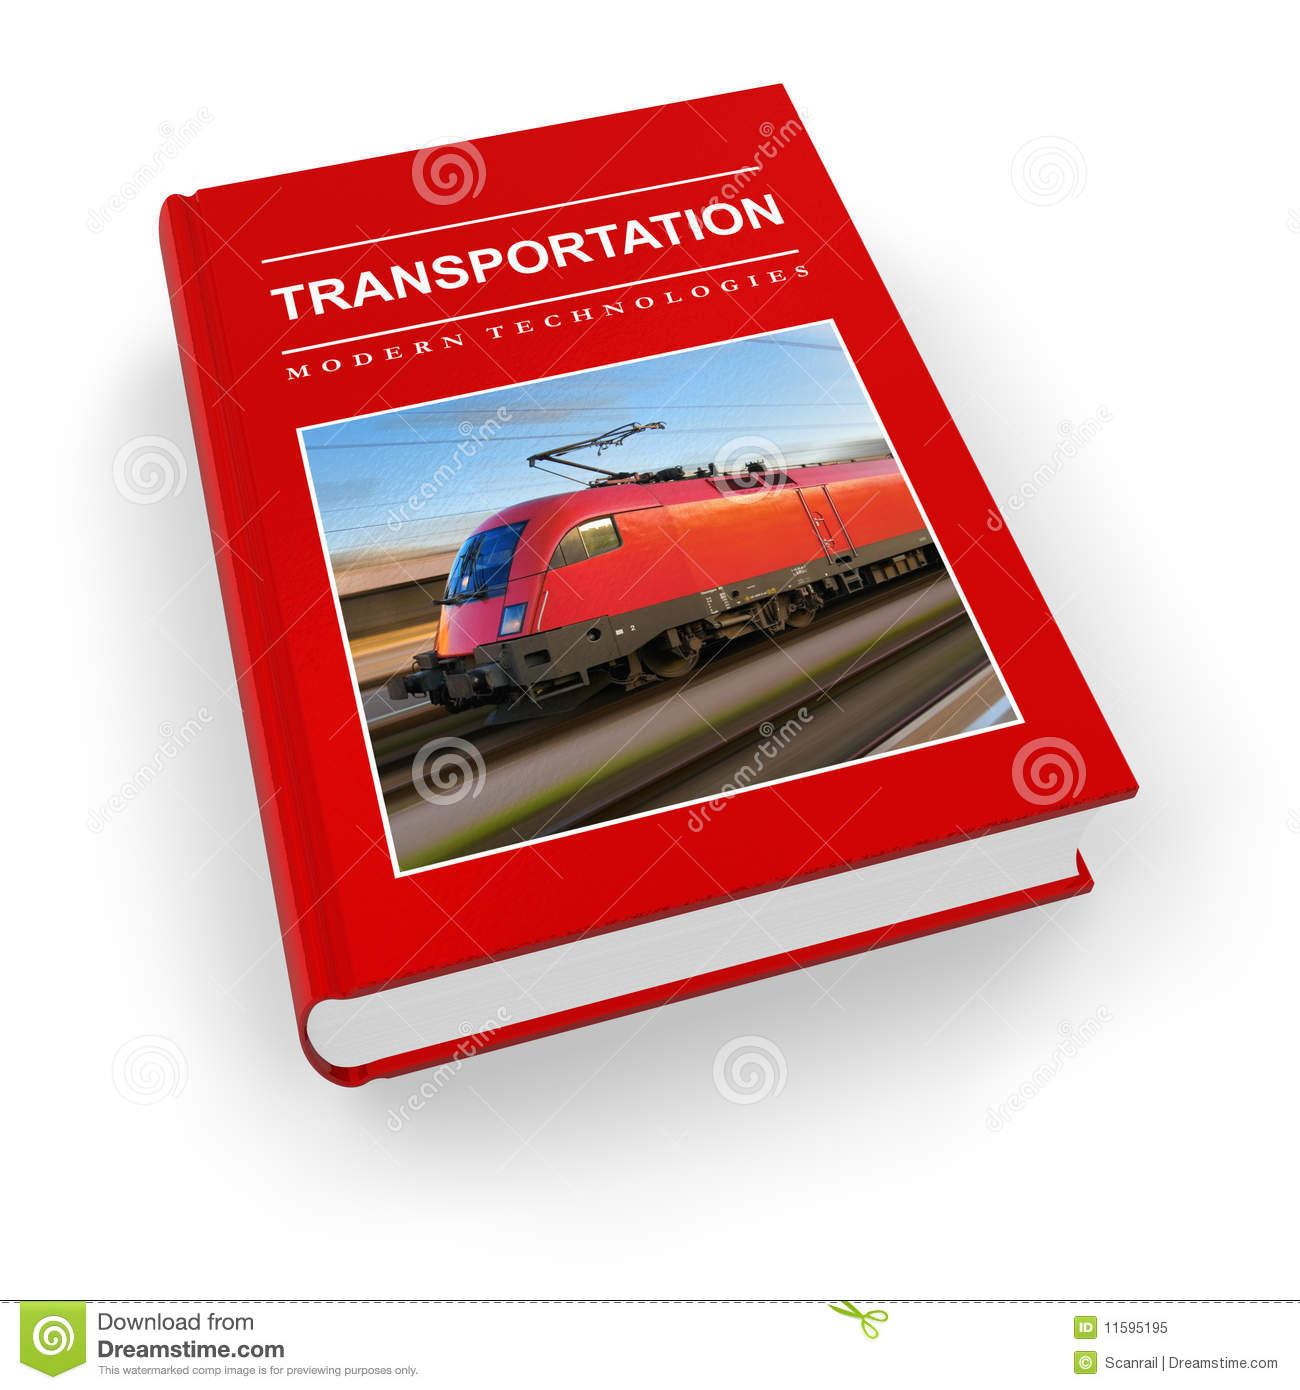 Transportation textbook